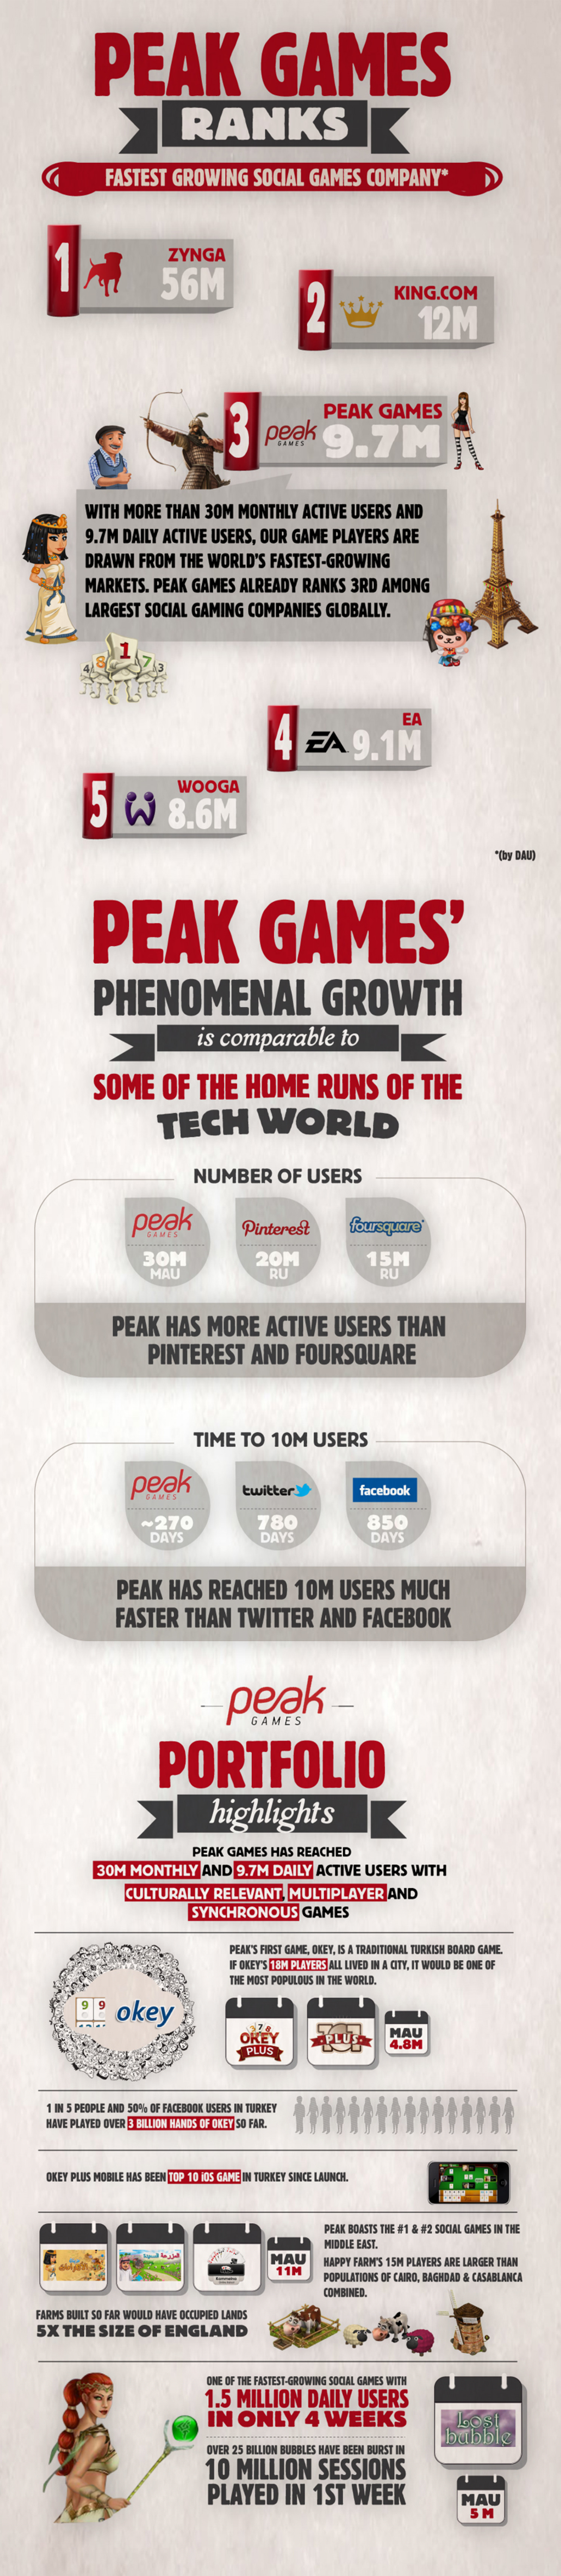 Peak Games Ranks #3 in Social Gaming: Phenomenal Growth Infographic Infographic